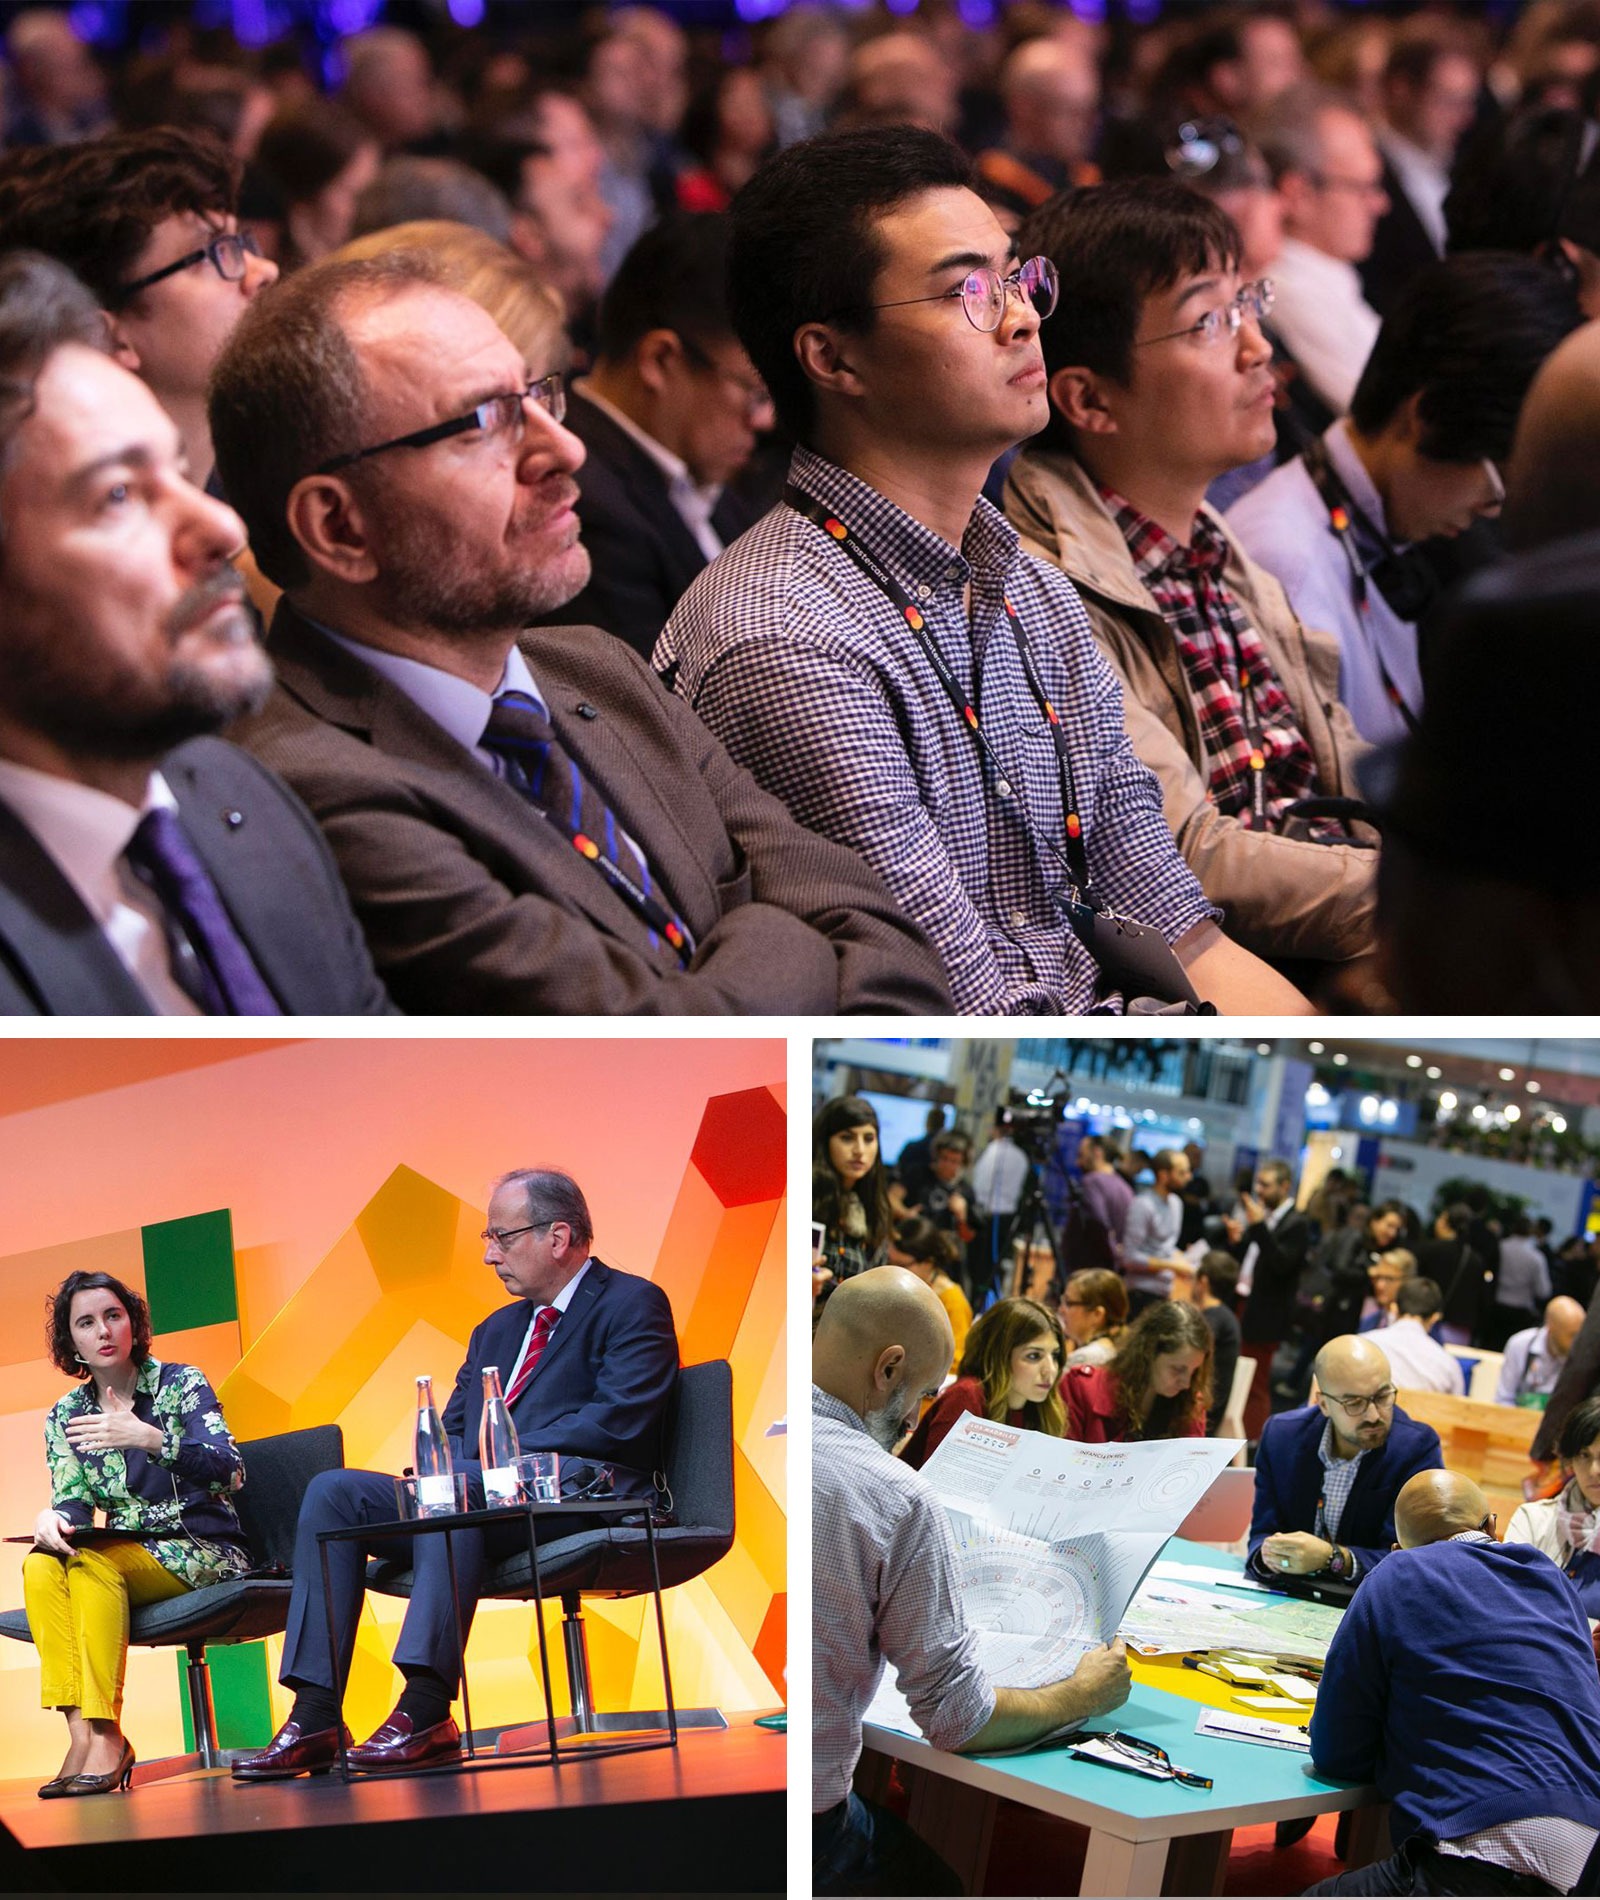 The first convening of the City Possible network will take place this week at Smart City Expo in Barcelona.